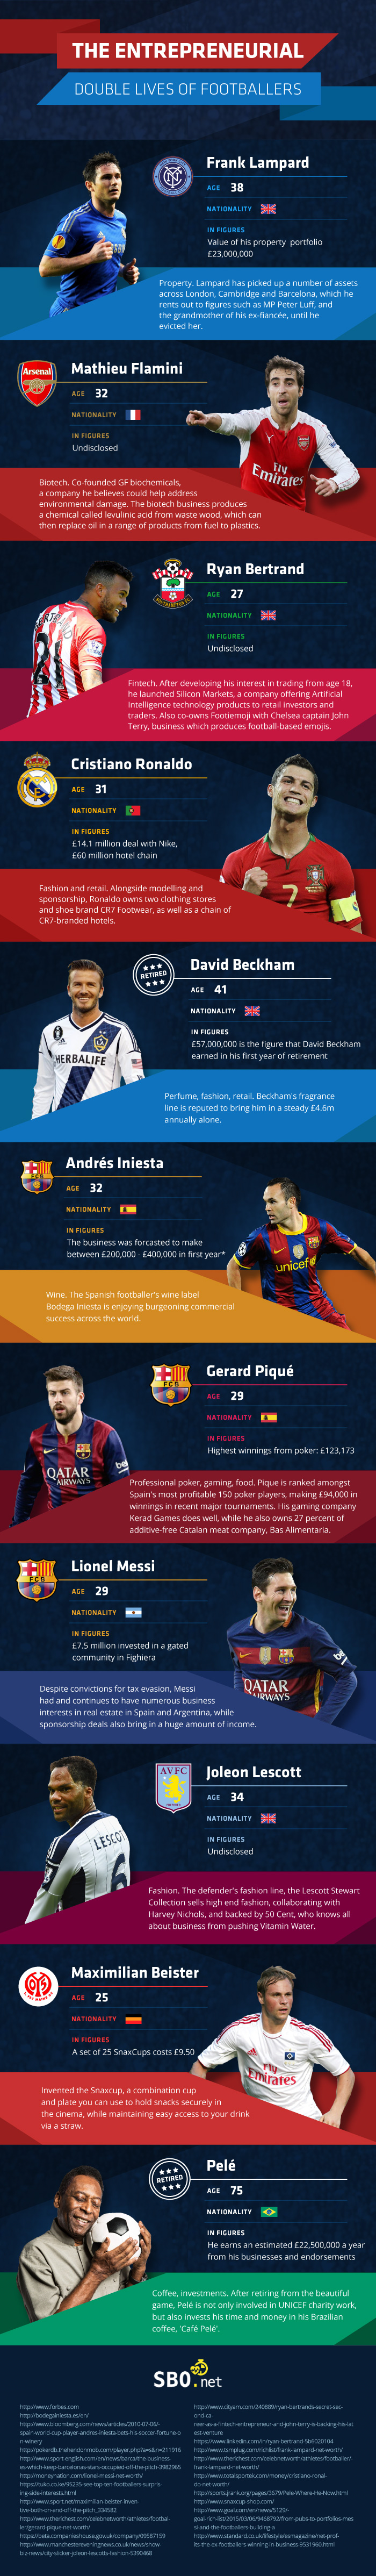 The Entrepreneurial Double Lives of Footballers infographic